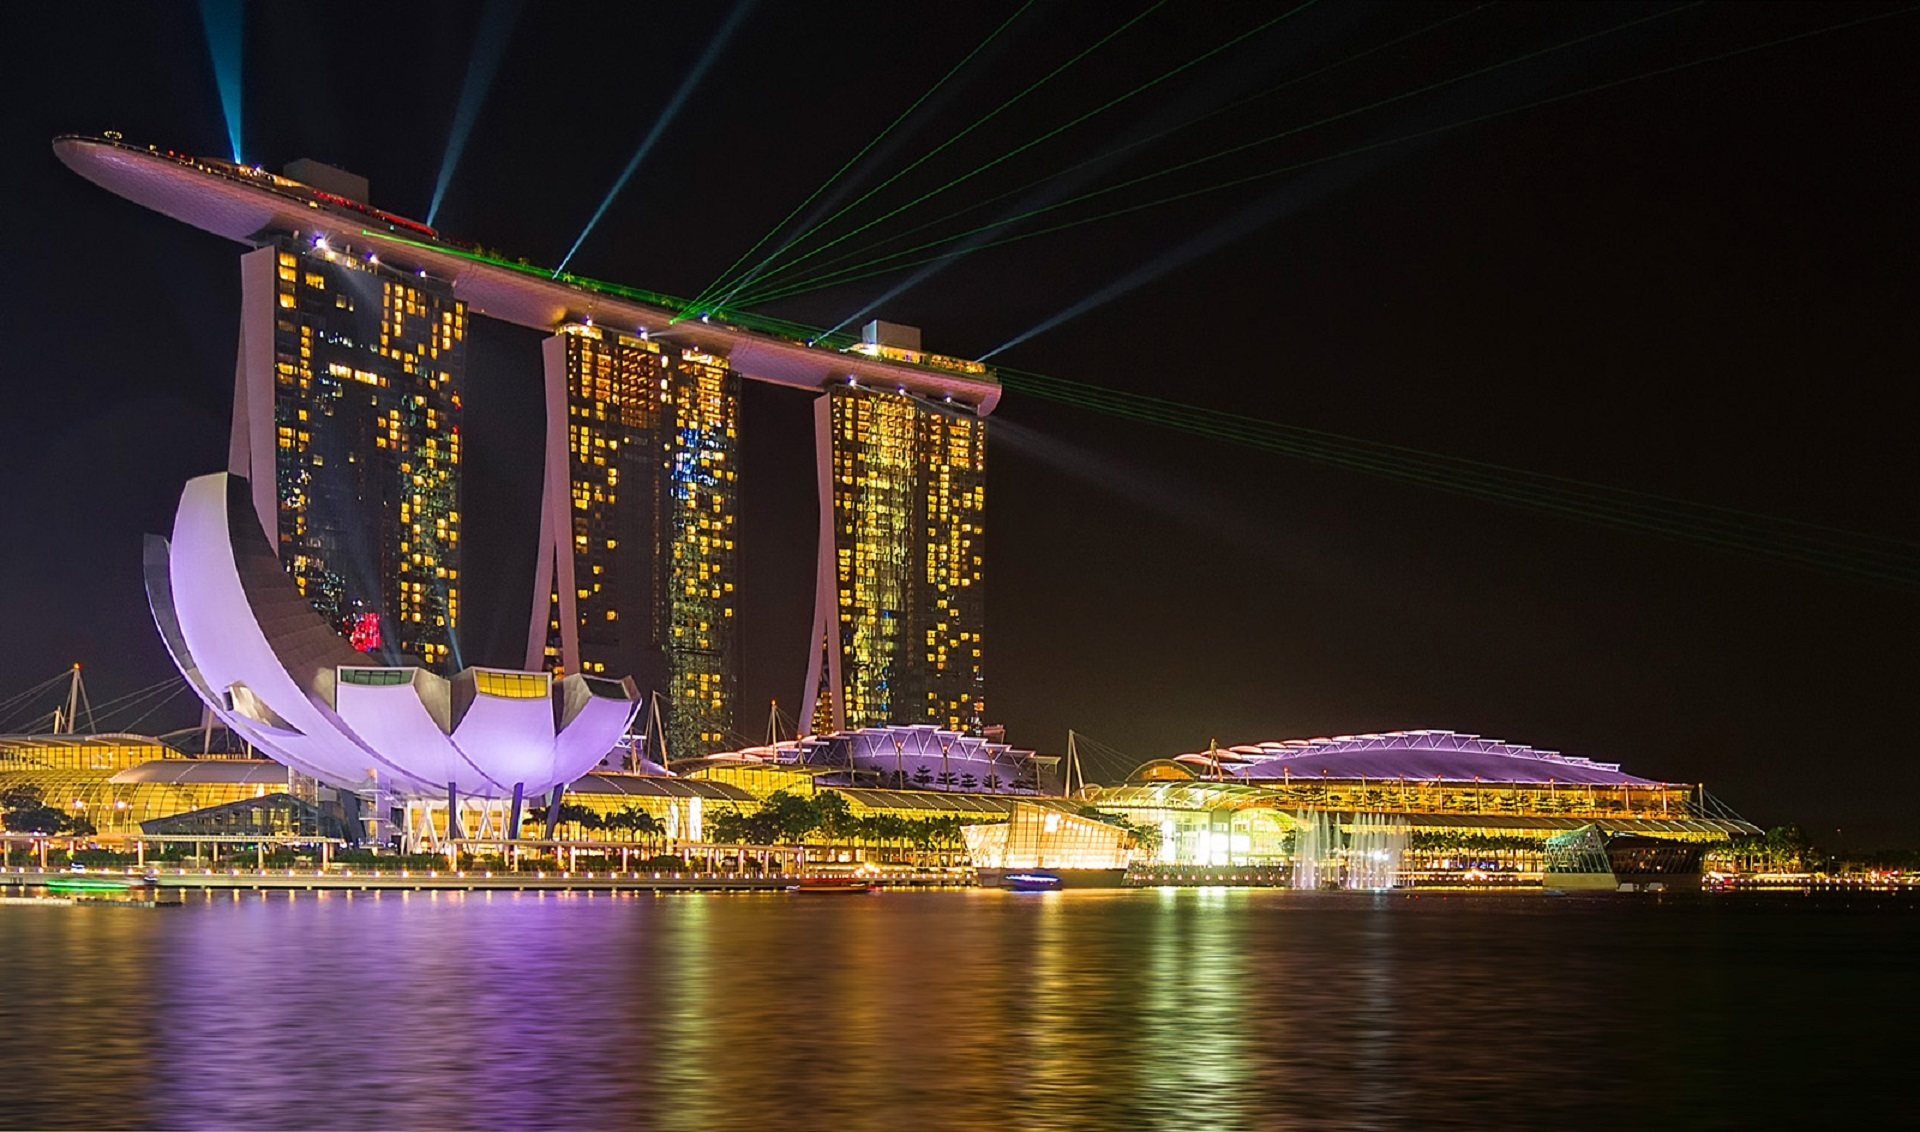 Open Broadcast Systems to Exhibit its RIST solution at BroadcastAsia